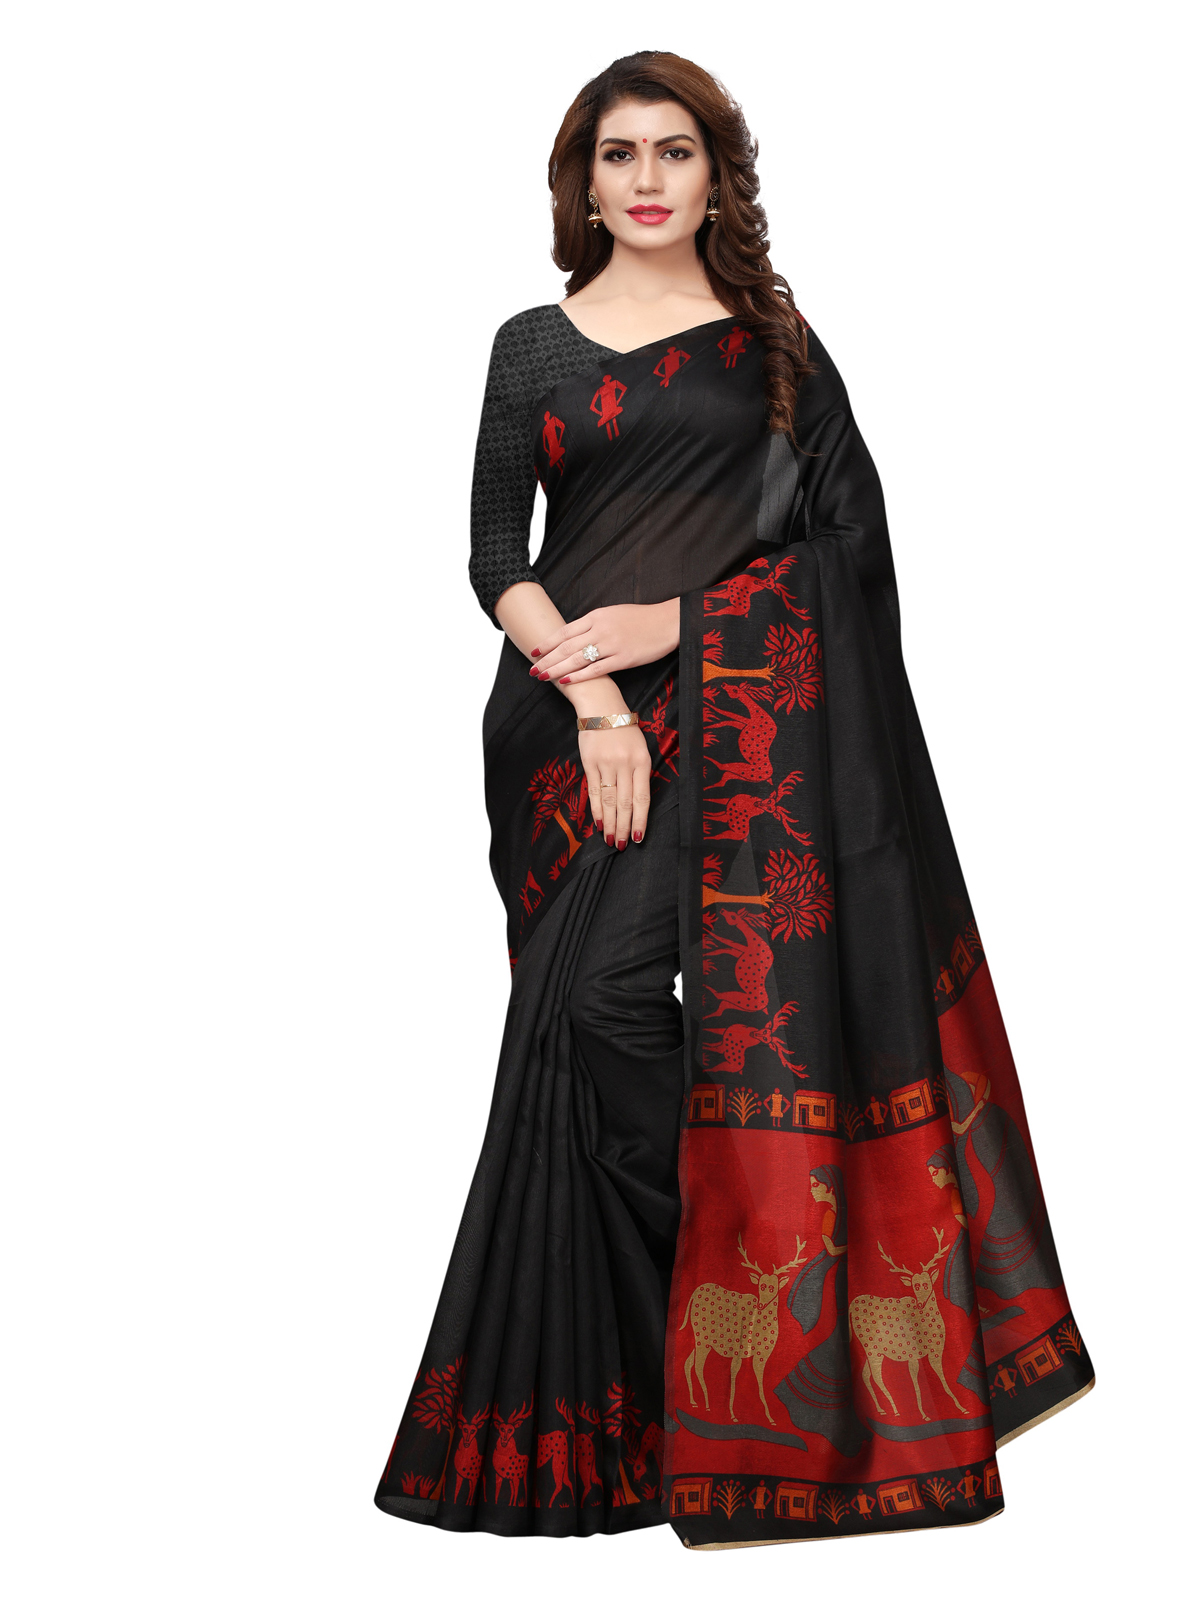 Black Sarees Buy Color Saree Online Best Prices Kemeja Row Hitam Shop At Velvet